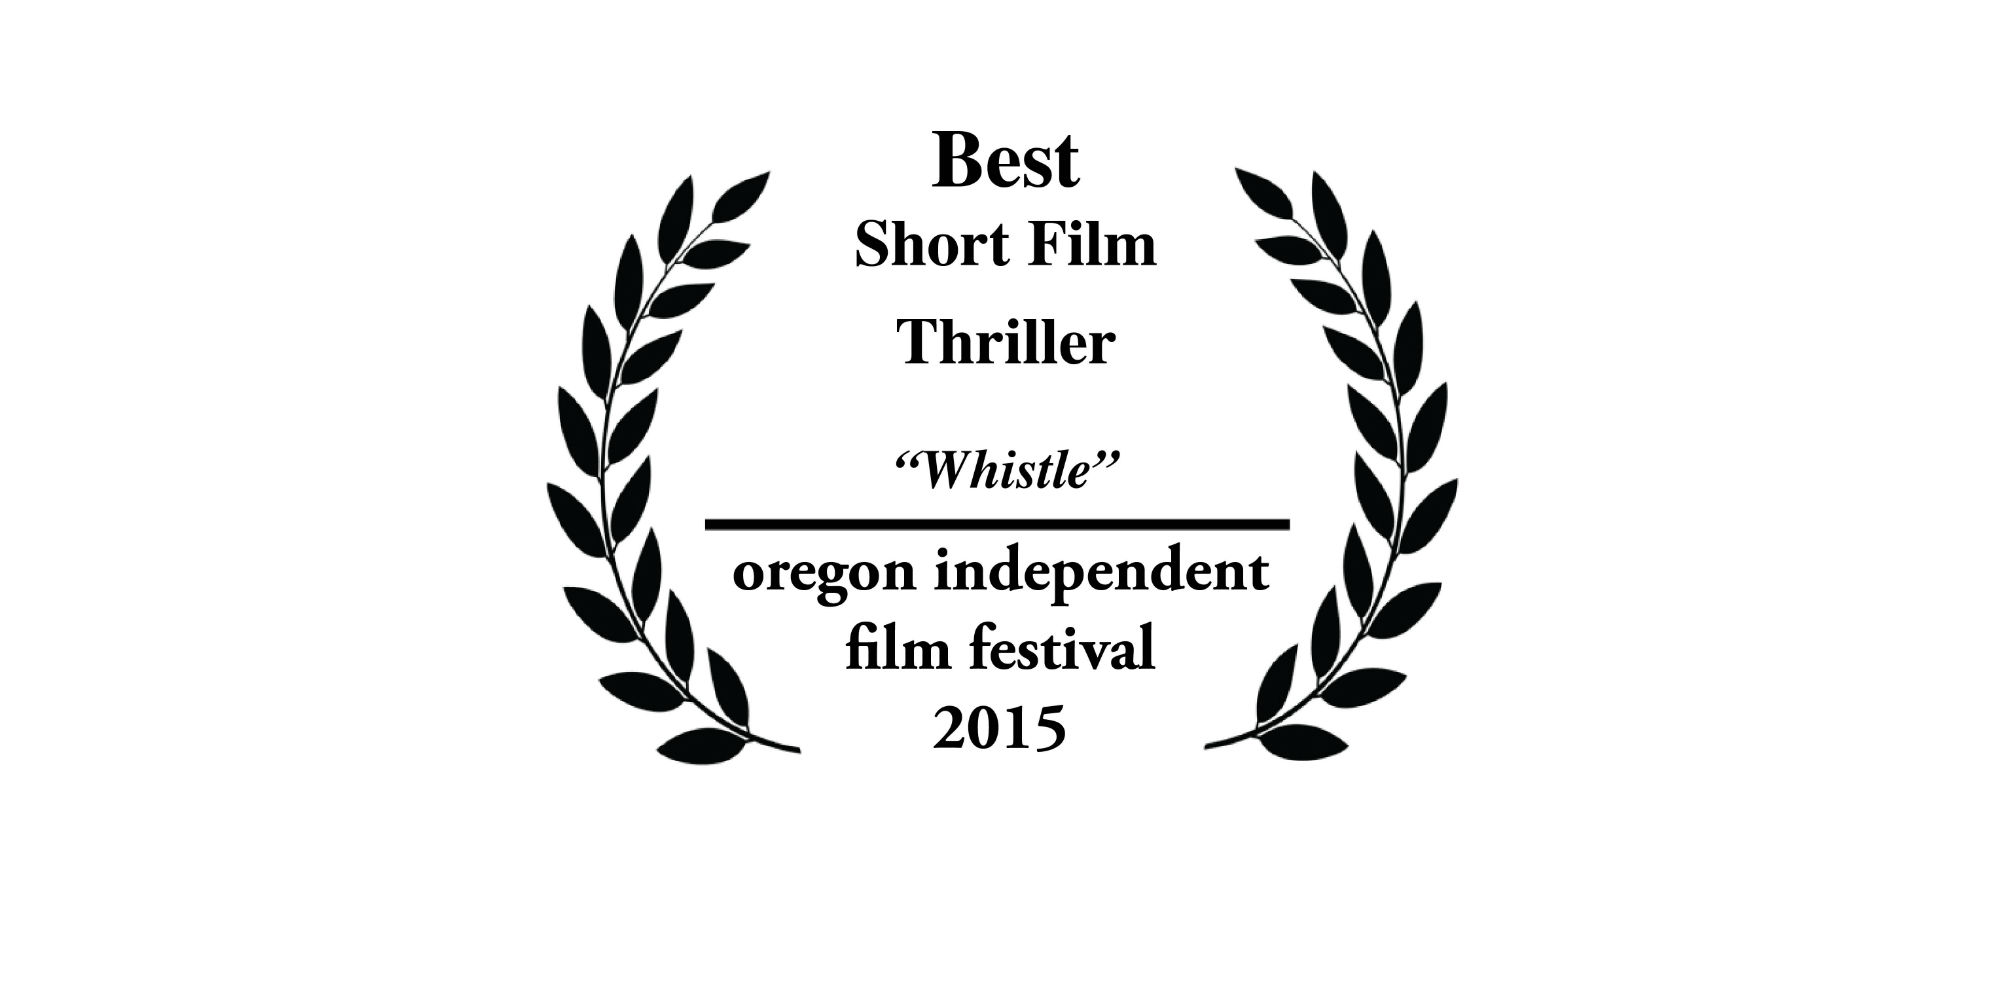 college of liberal arts oregon state university perry grone dca graduate and austin hodaie dca major receive award for best short film thriller